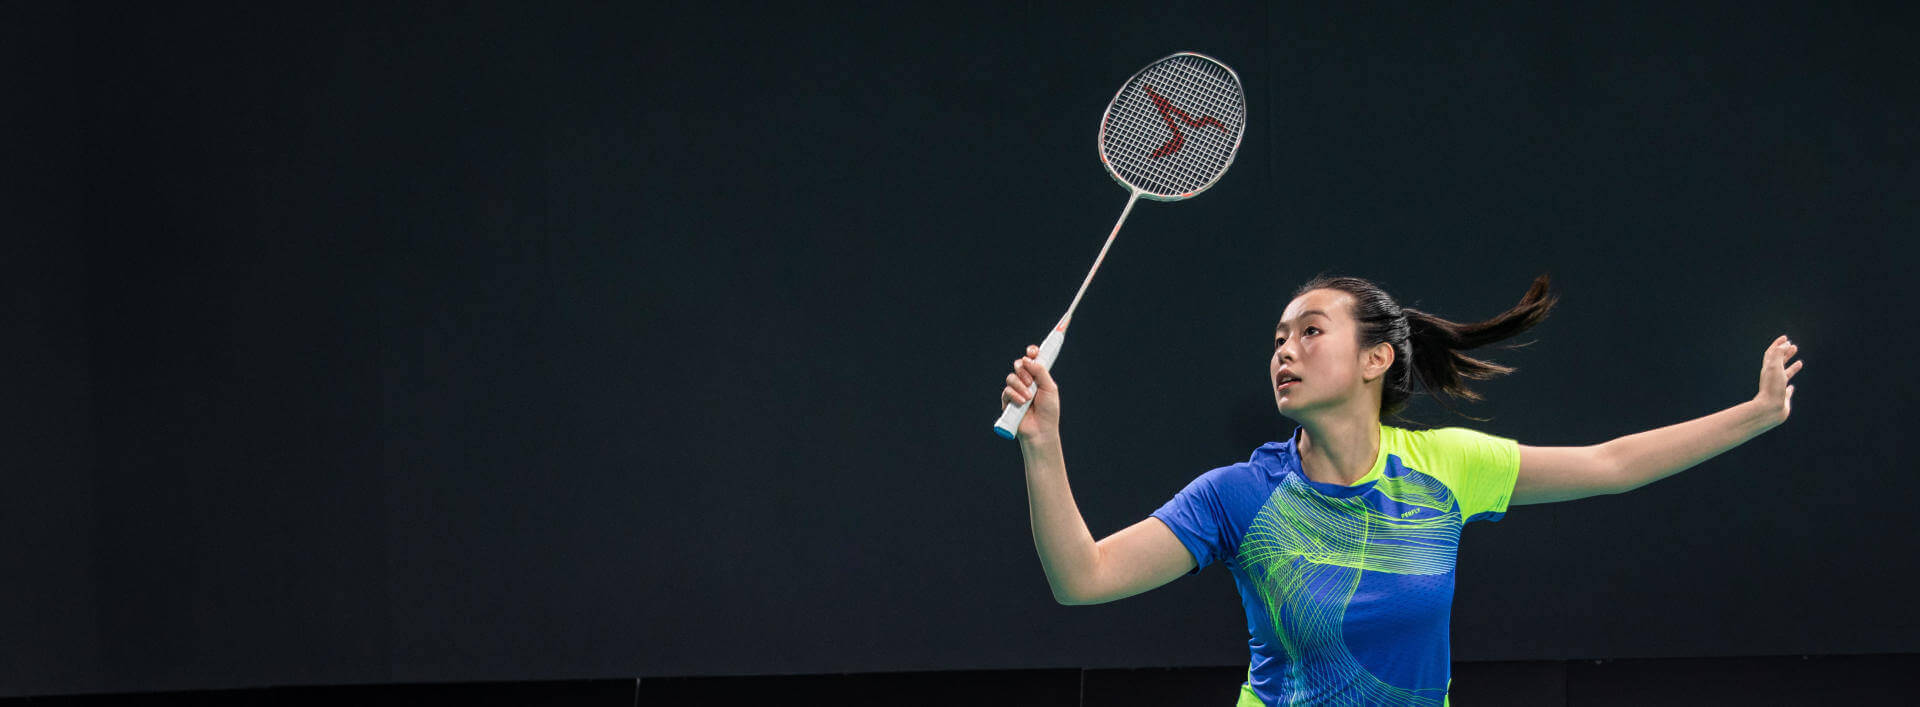 Badminton - Fascinating Facts About Badminton History